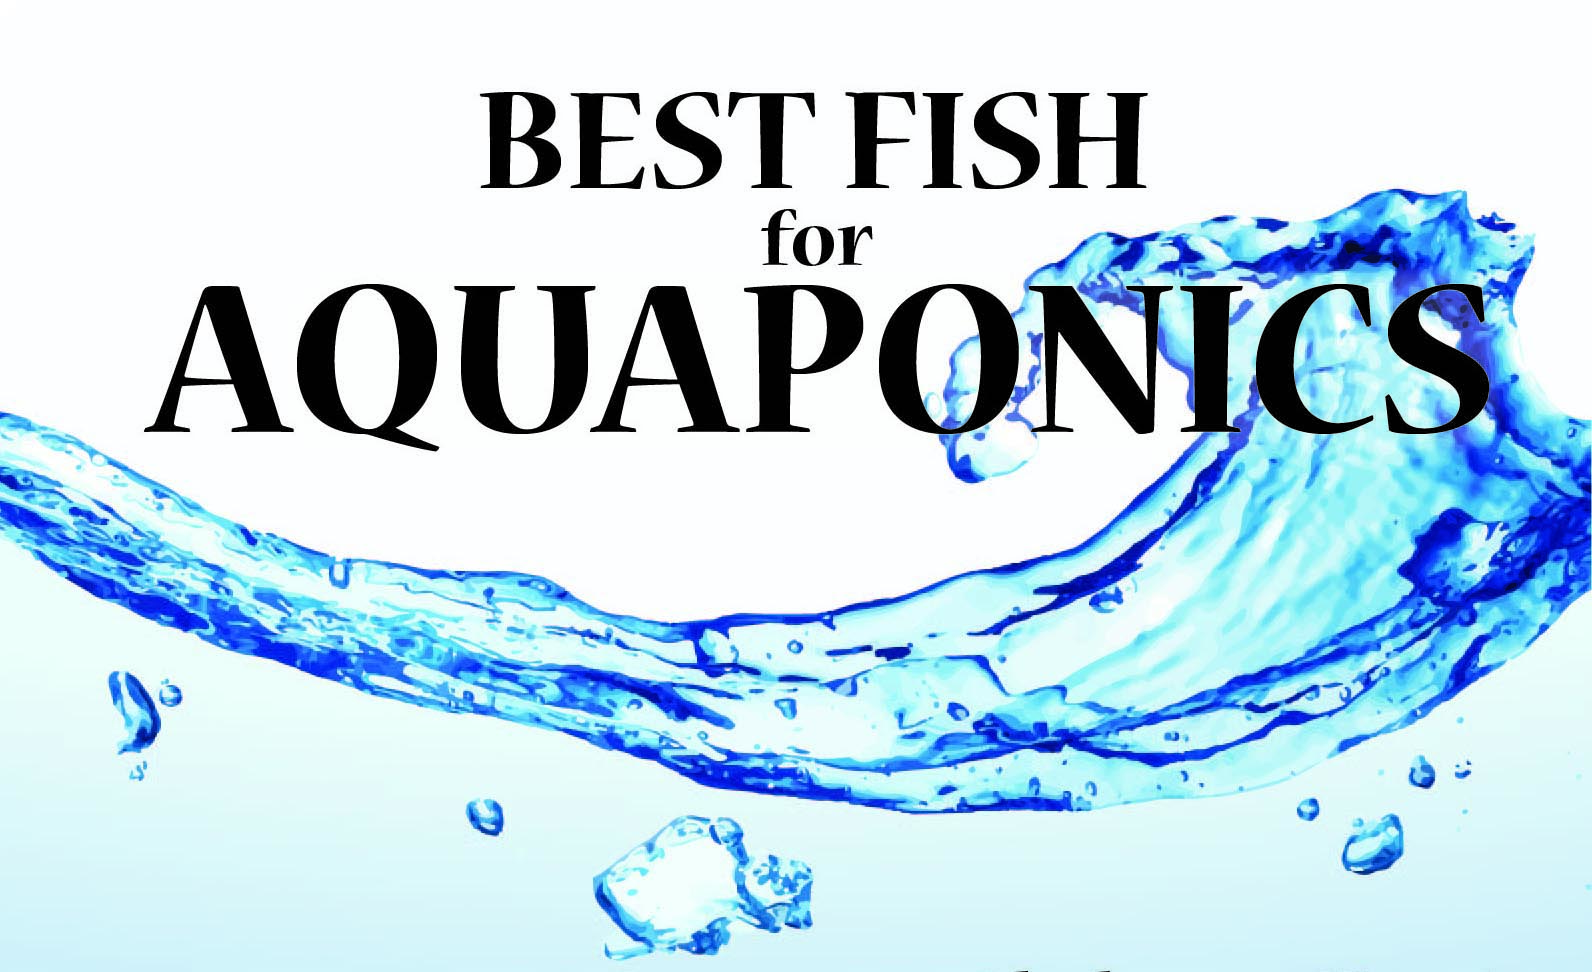 types of fish for aquaponics